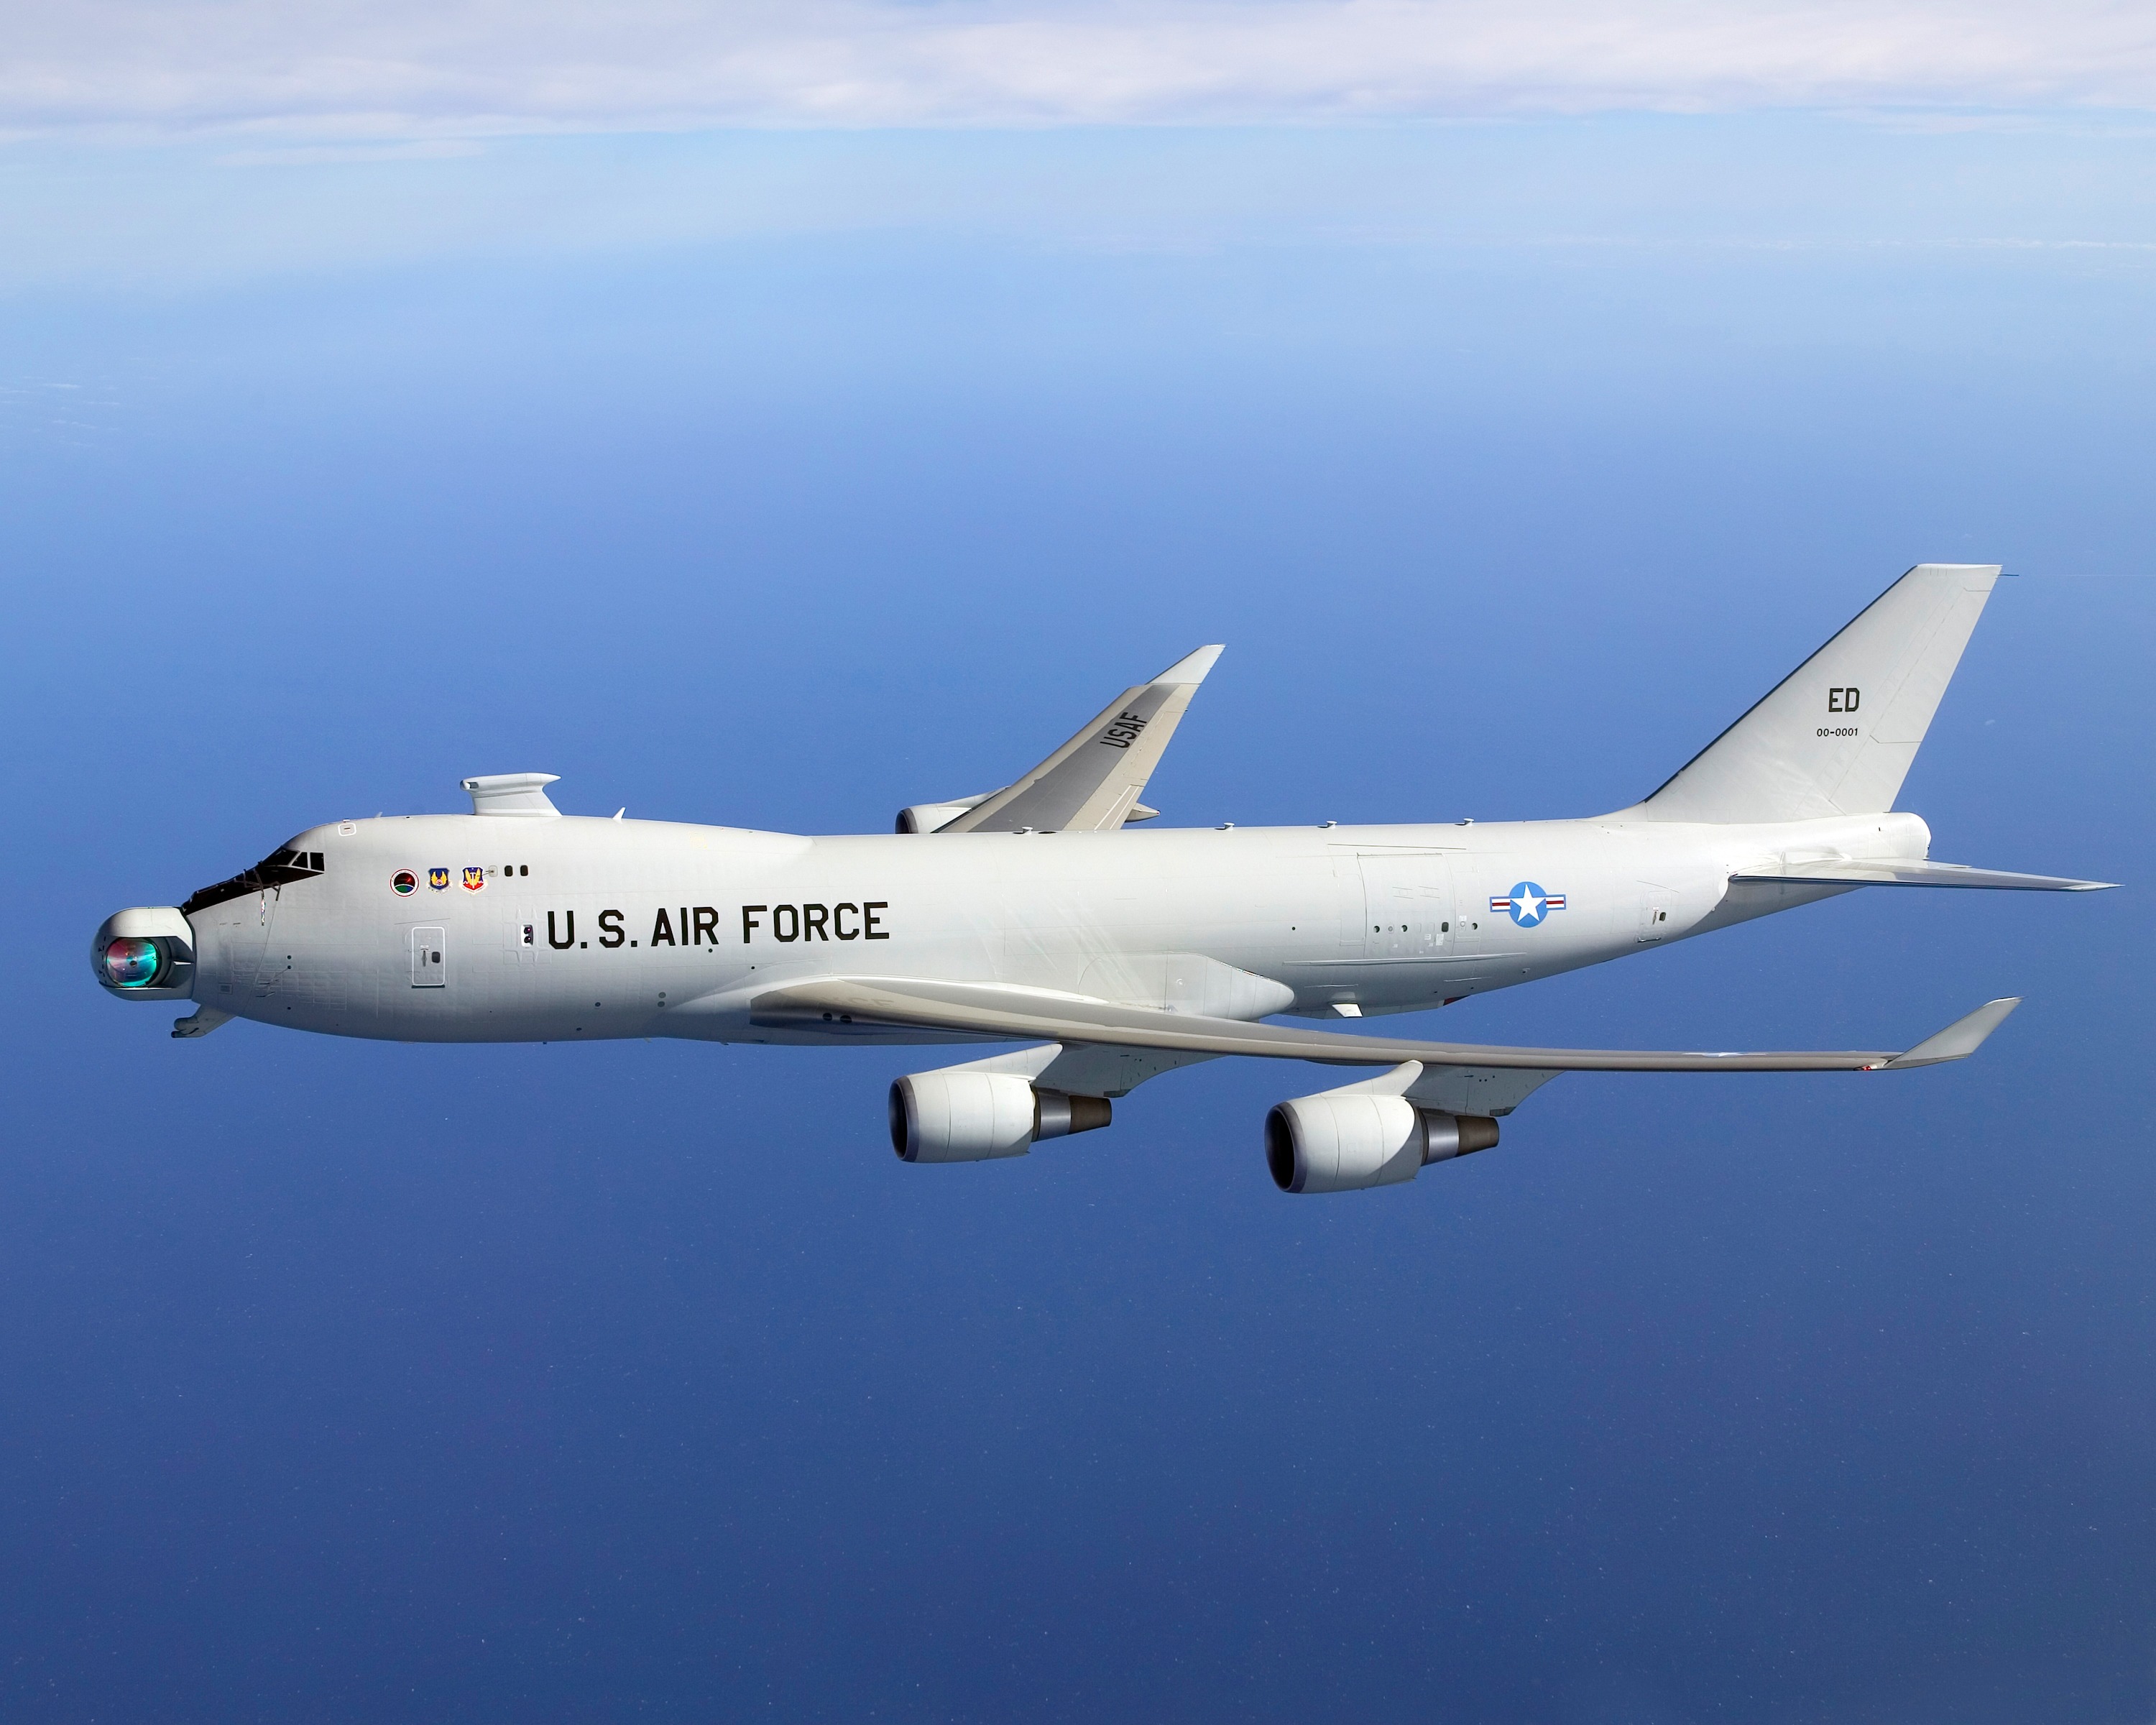 The YAL-1 was a US airborne laser system designed to eliminate missiles in the boost stage of their flight. The system is no longer being considered or tested.